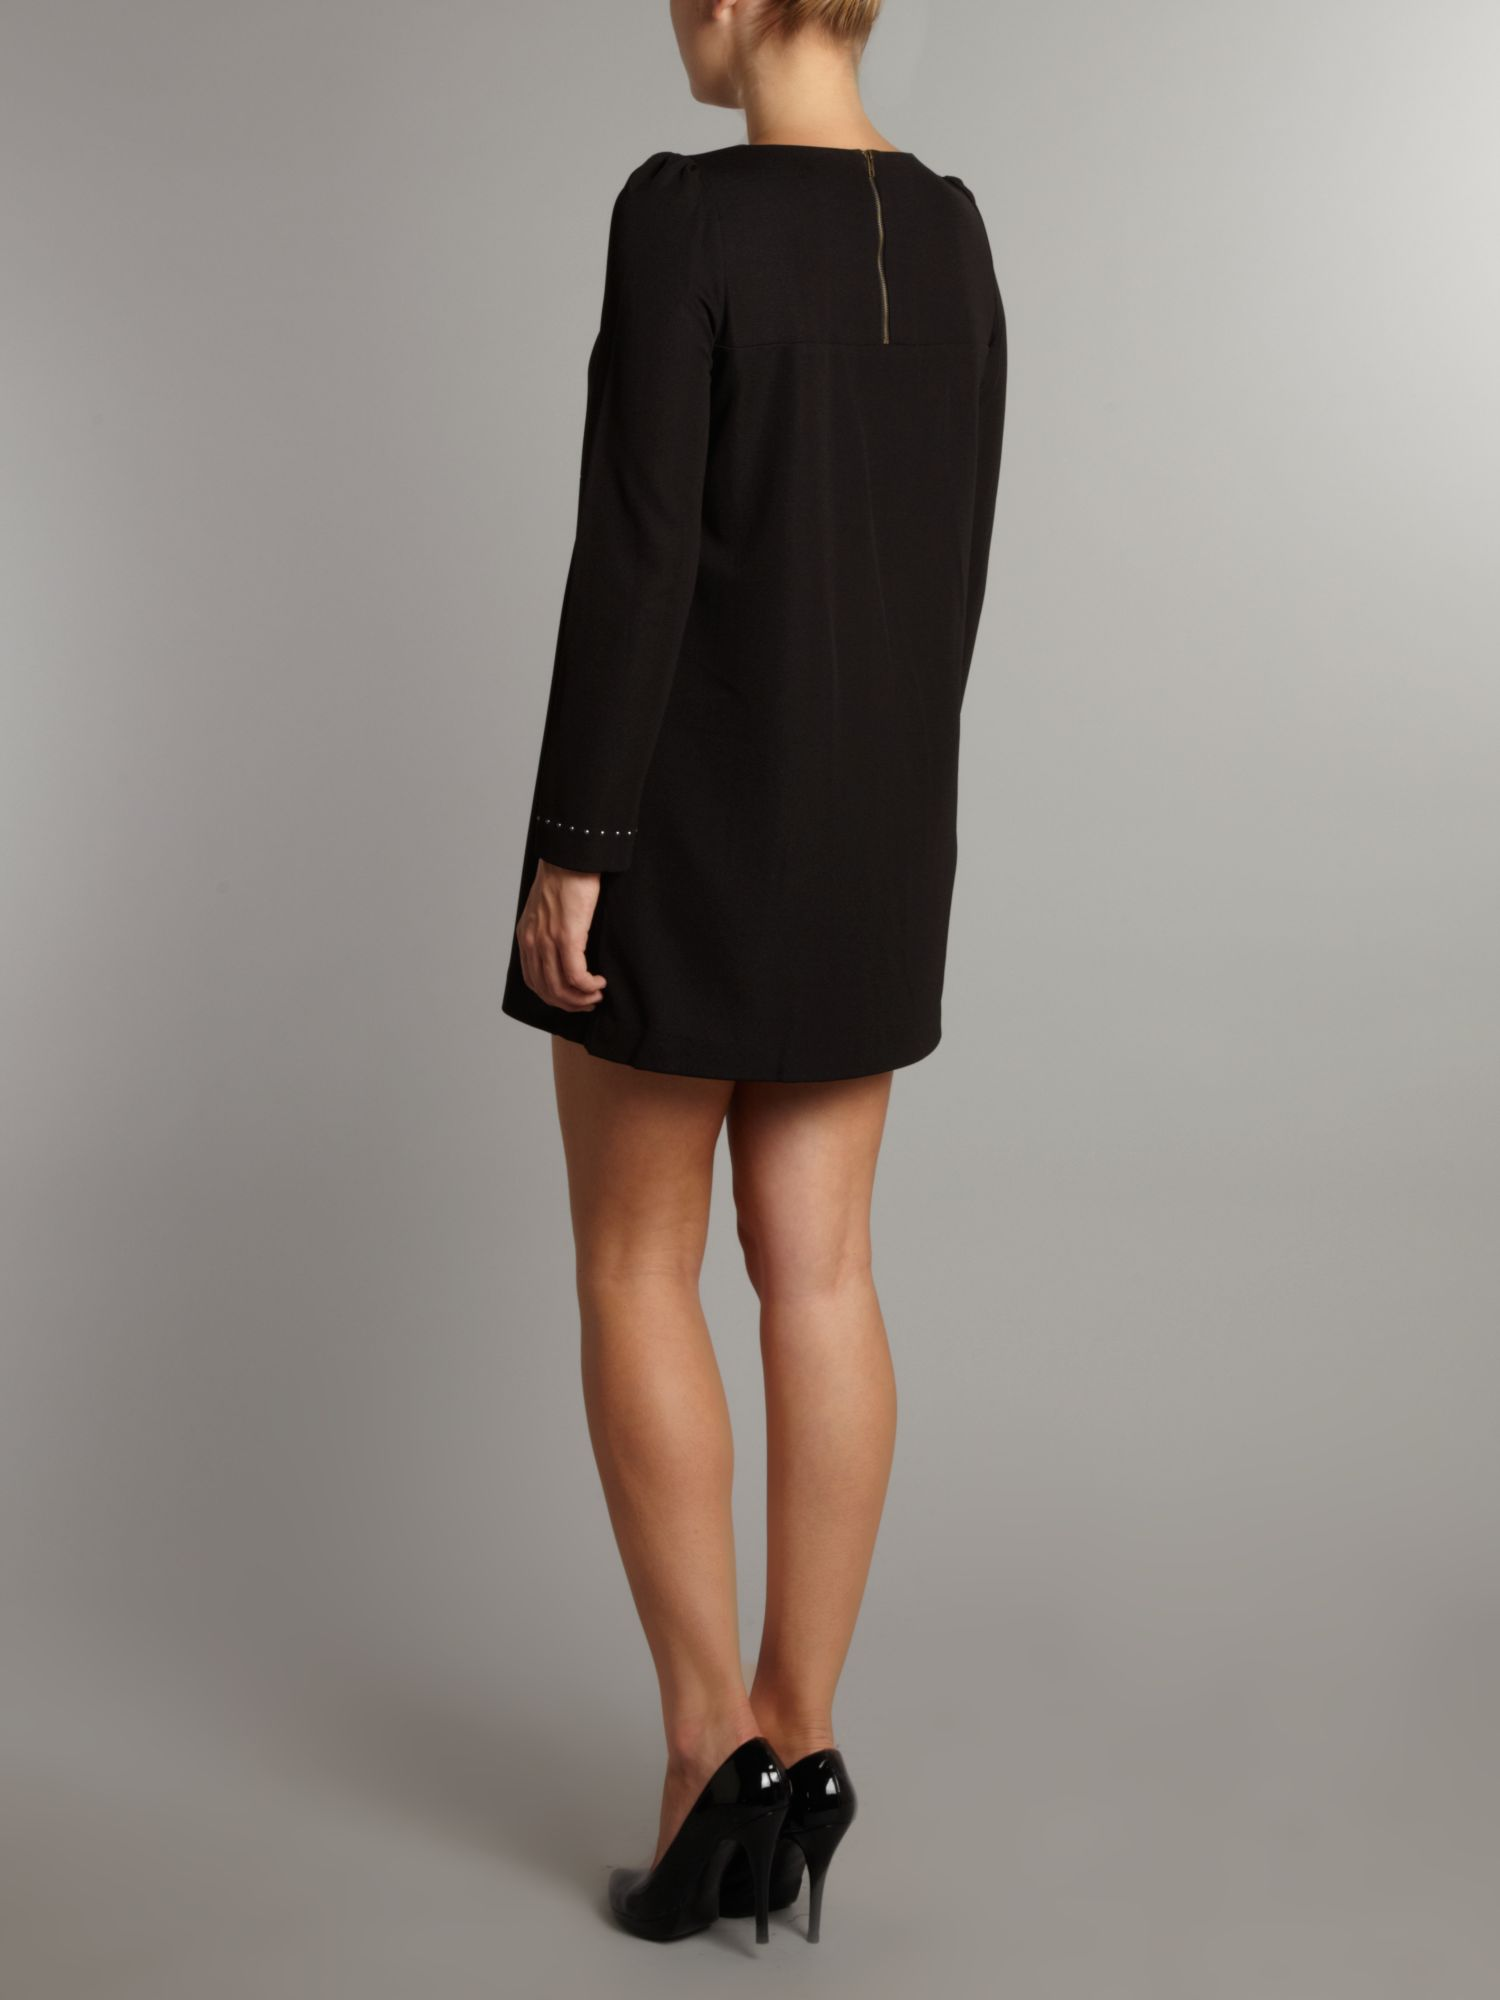 Almost famous Long Sleeve Tunic Dress in Black - Lyst